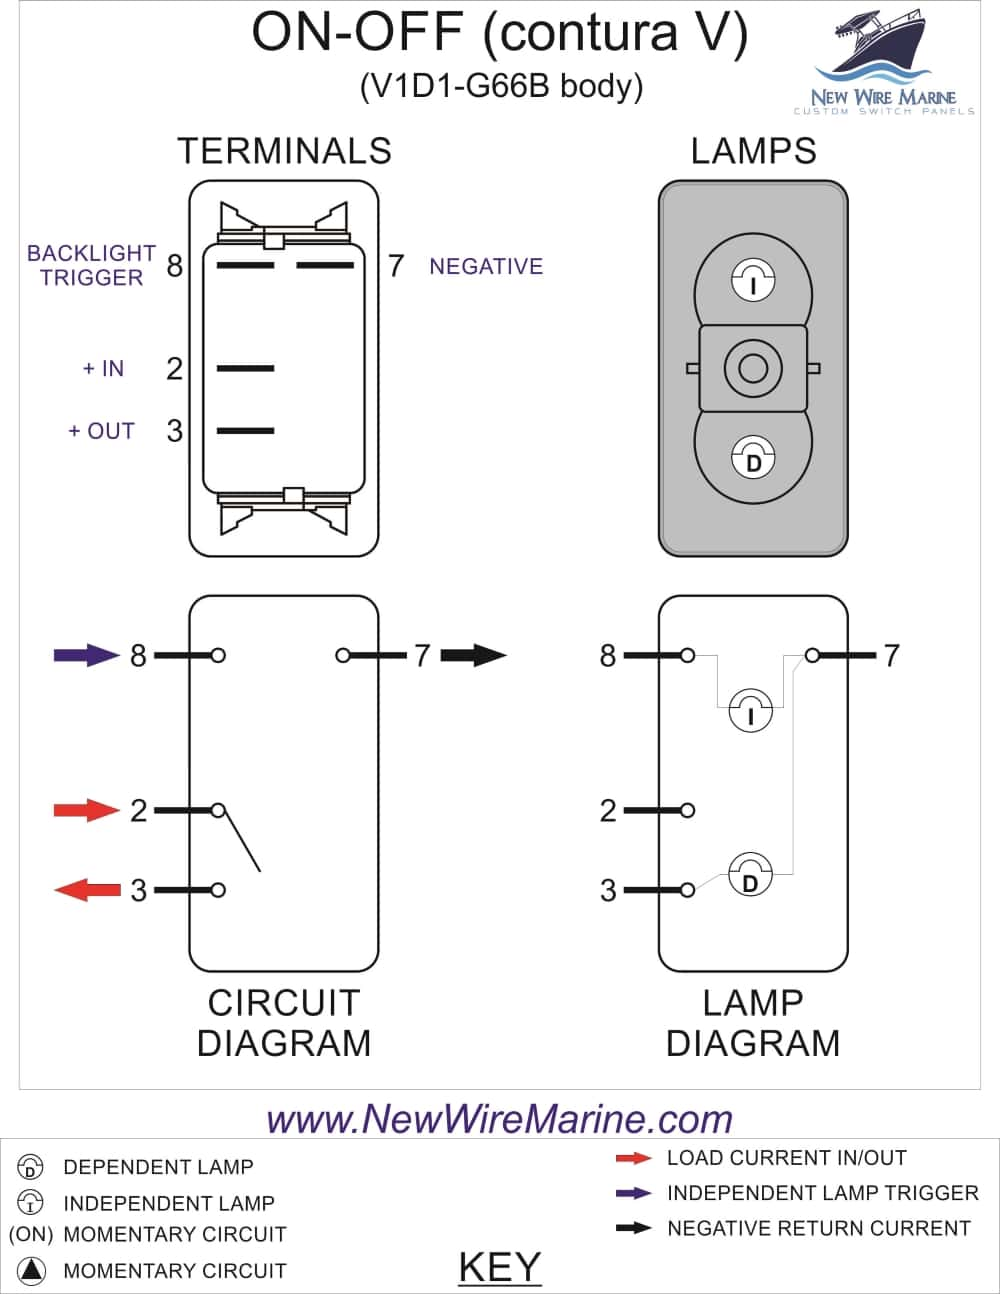 boat accessory switch panel wiring diagram free car diagrams rocker light medium resolution of on off blue led carling v1d1 new wire marine to